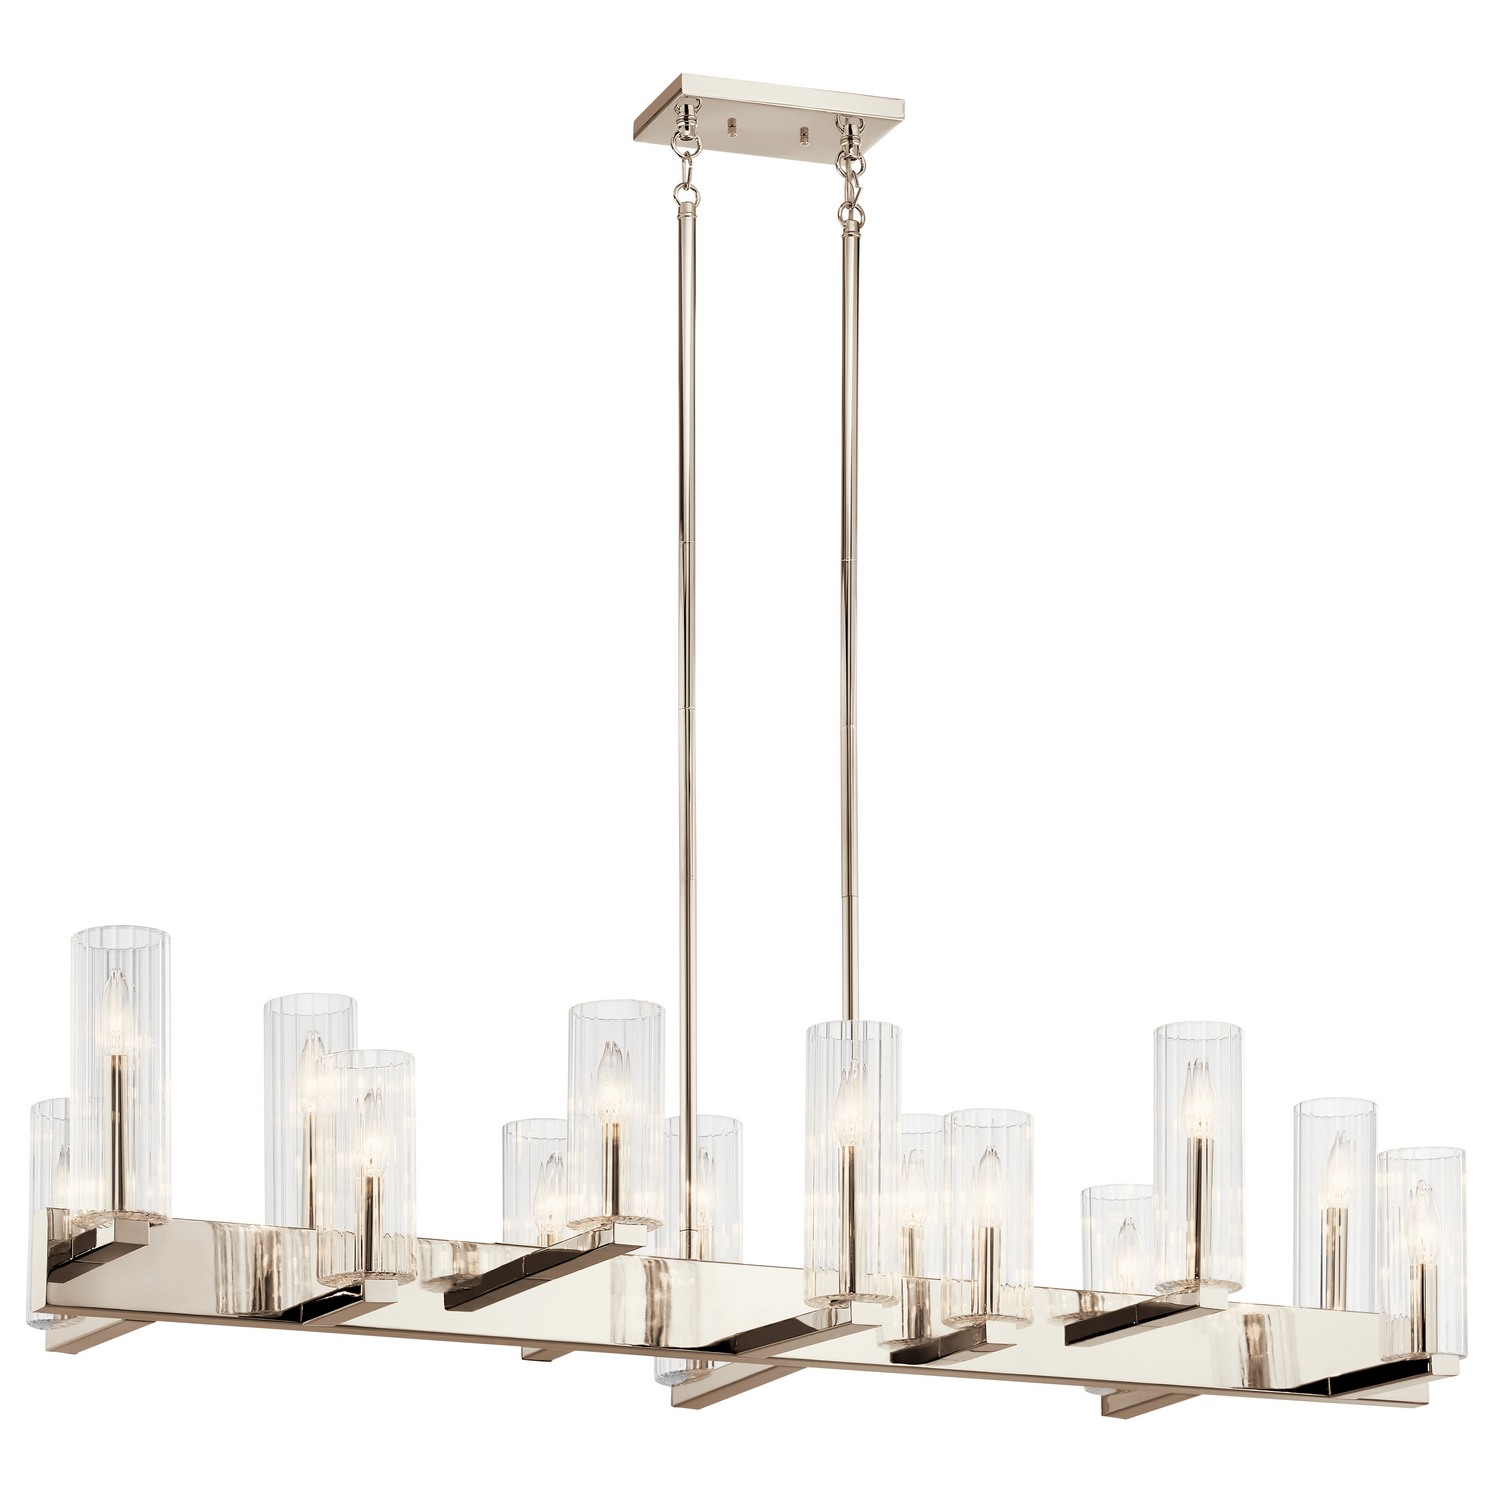 14 Light Linear Chandelier from the Cleara collection by Kichler 44317PN